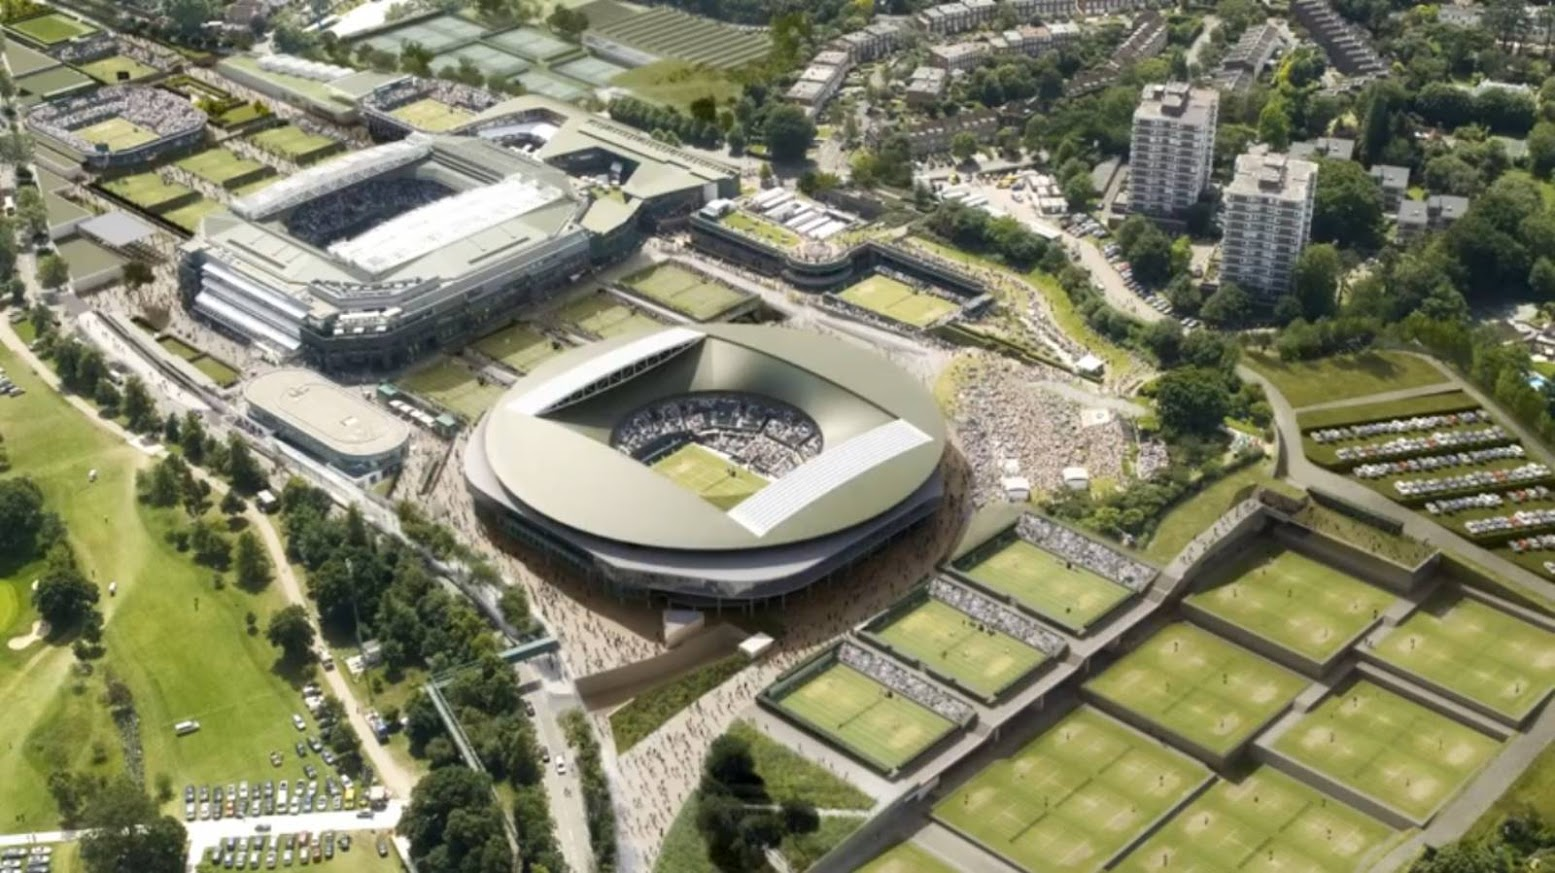 Londra, Regno Unito: [WIMBLEDON MASTER PLAN BY GRIMSHAW ARCHITECTS]